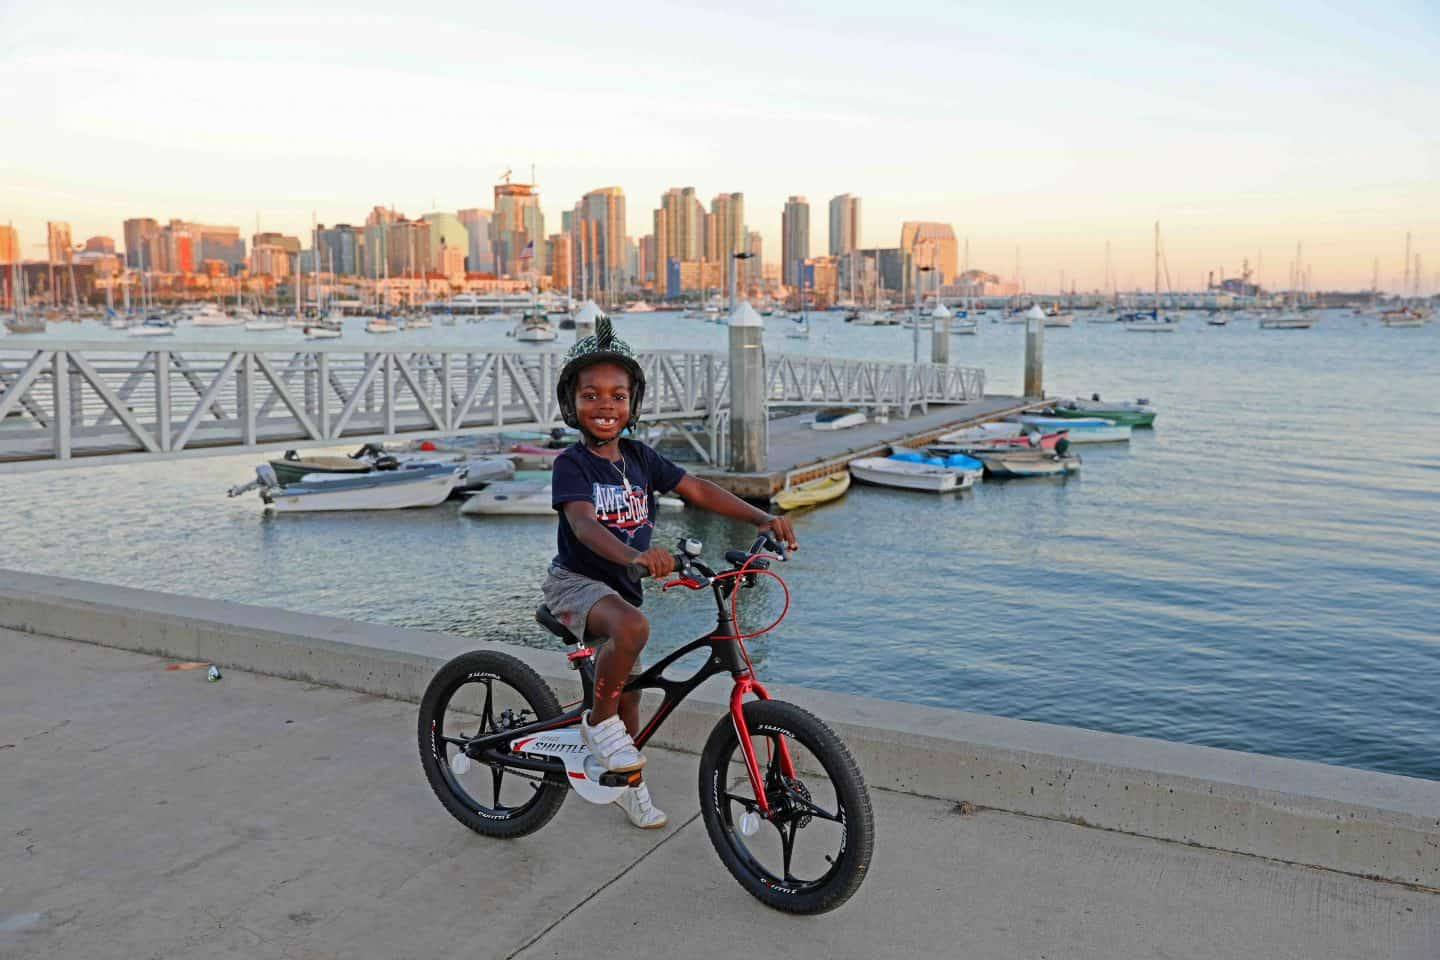 Riding bikes in Harbor View